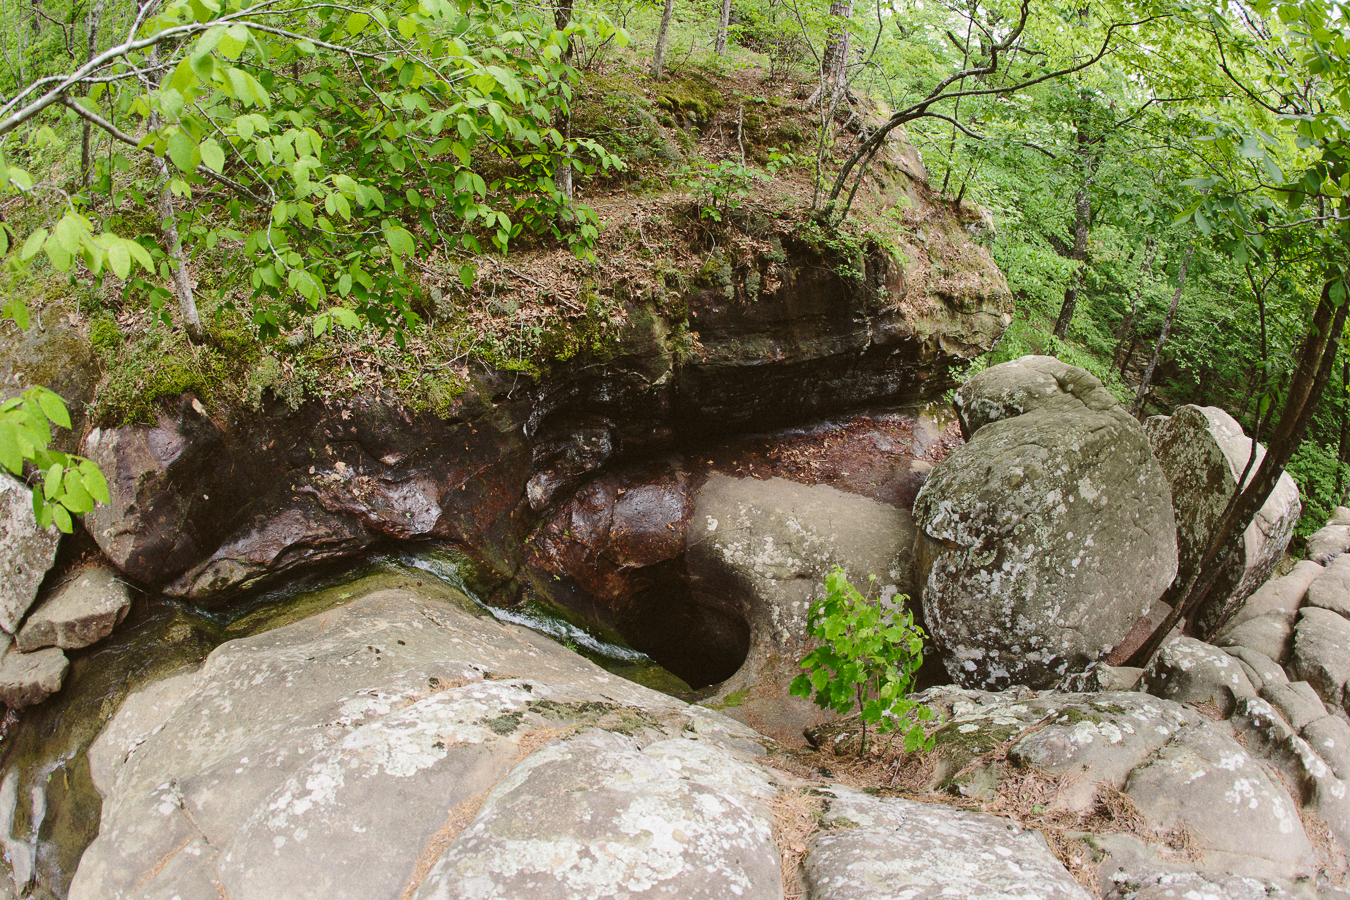 Over the centuries this creek's flow has drilled a hole straight through the rock-NEATURE.